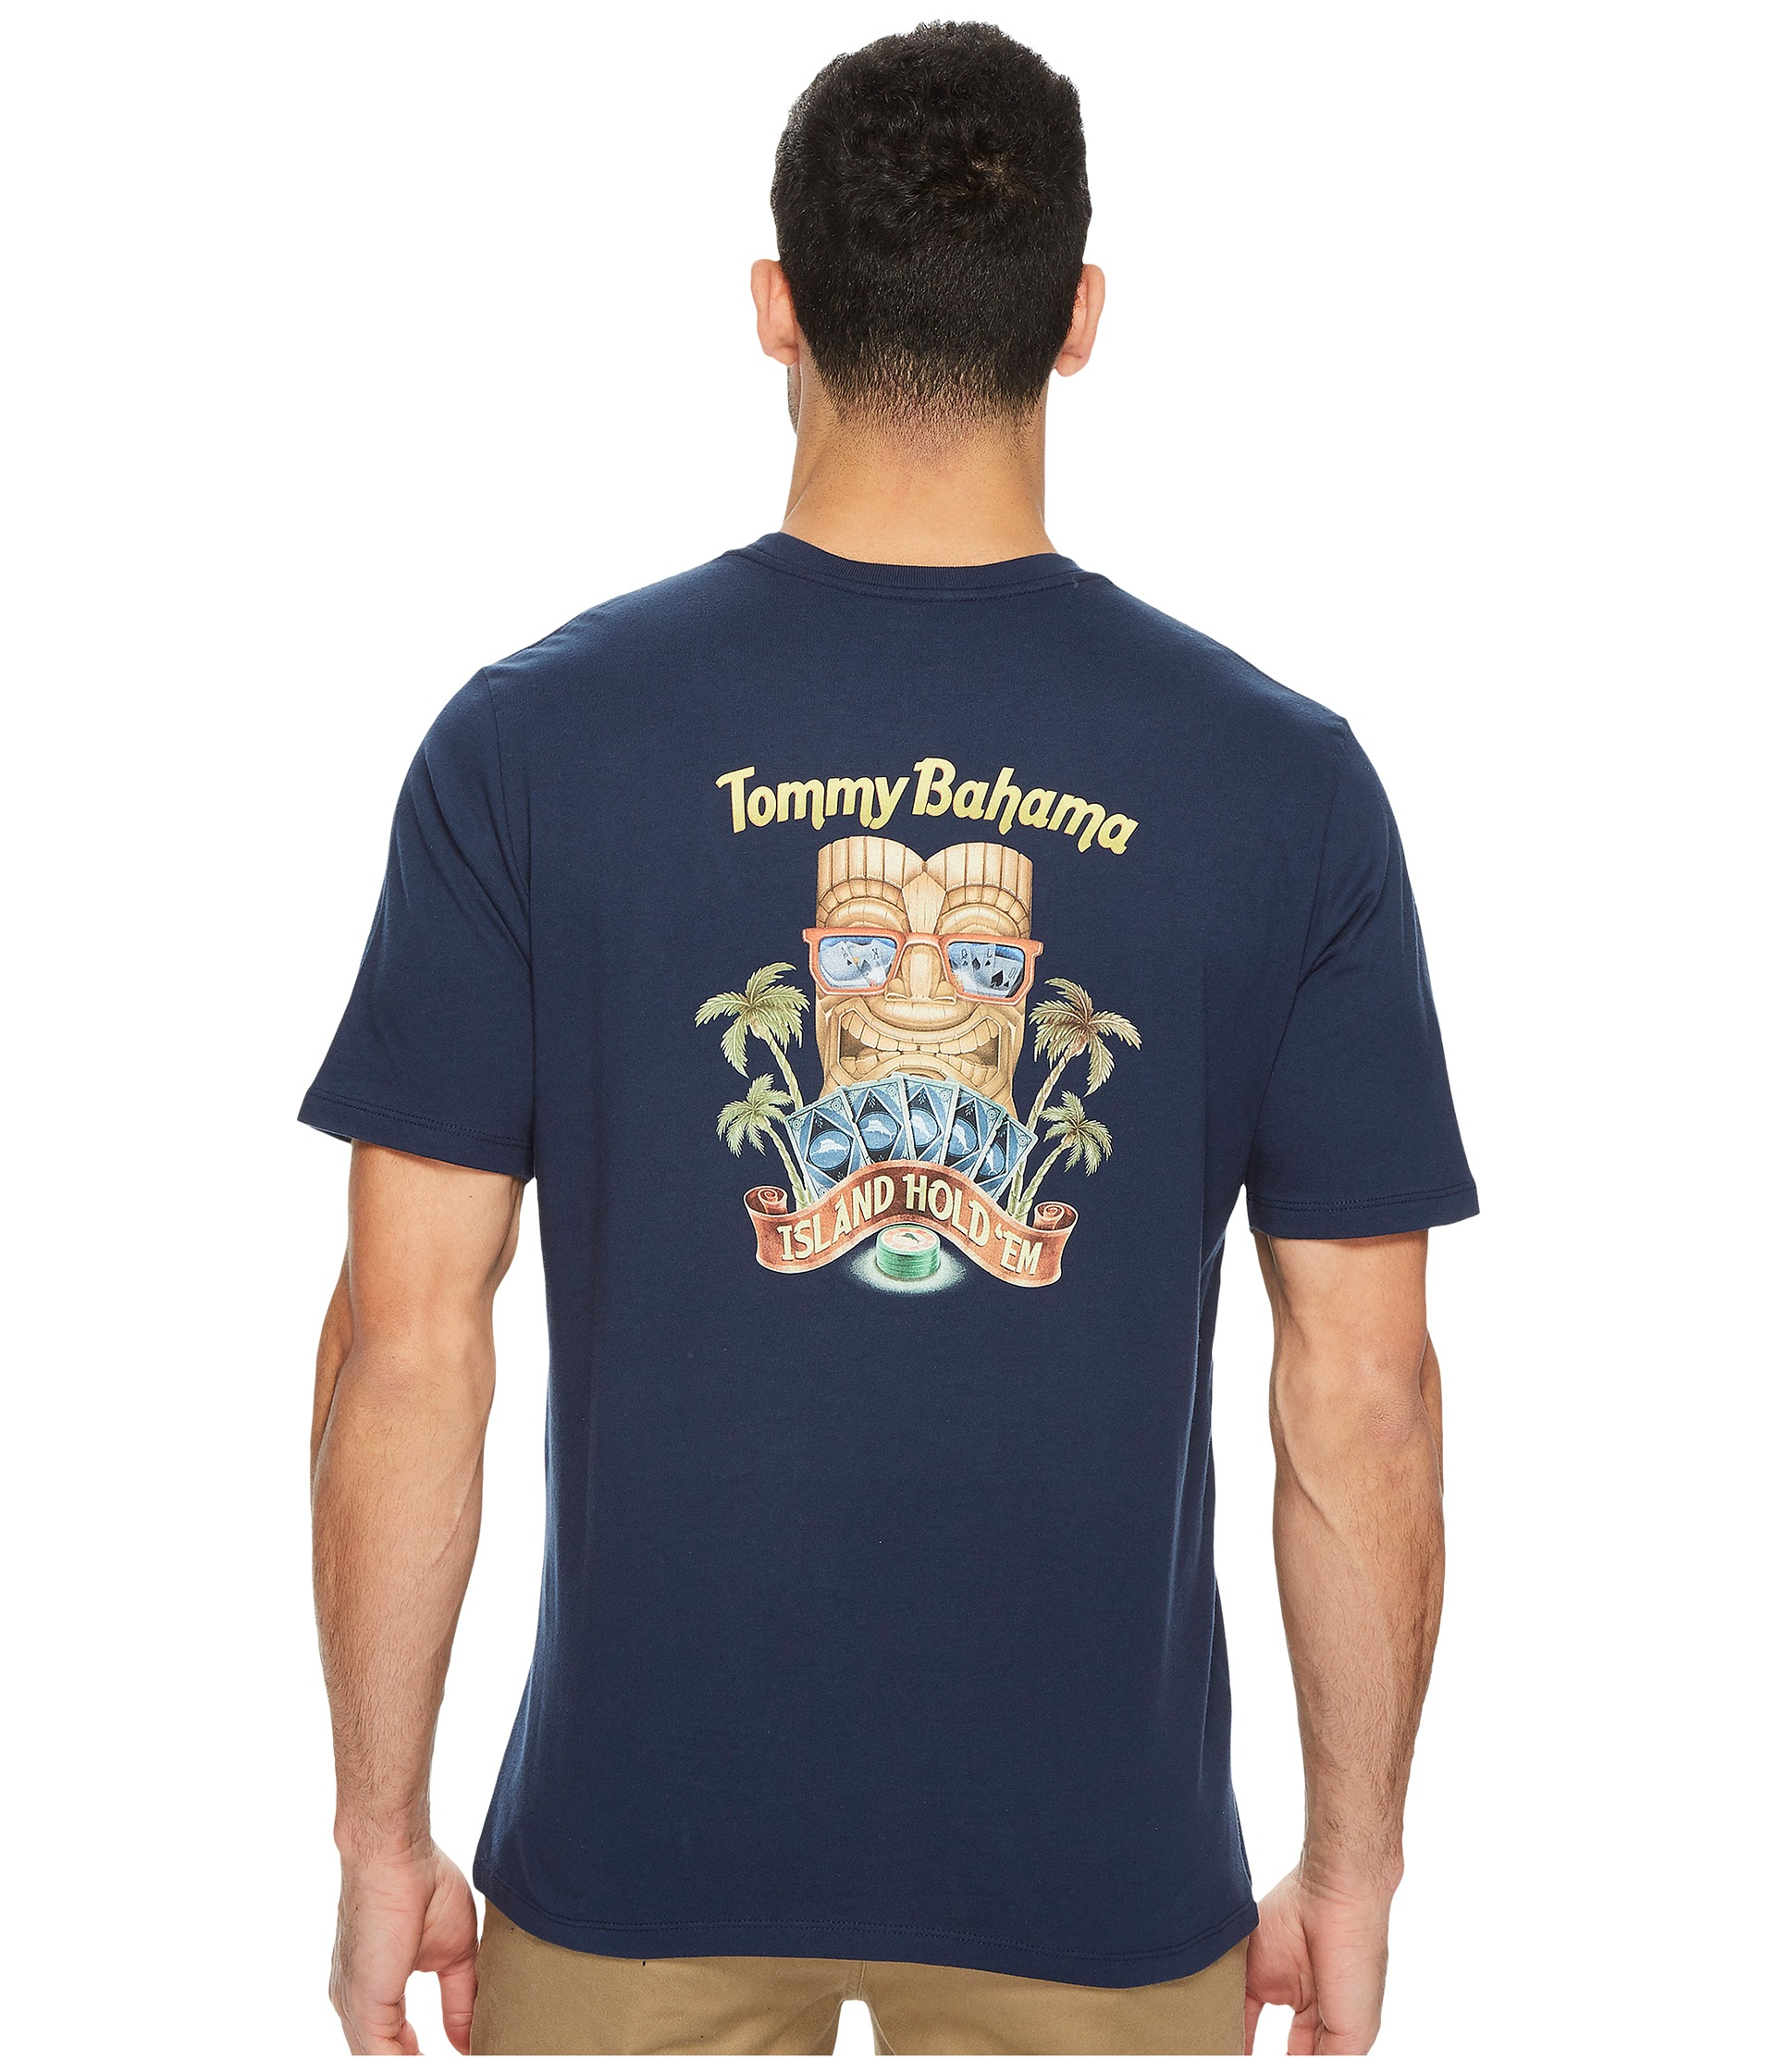 Tommy Bahama Island Hold Emfielder T Shirt At